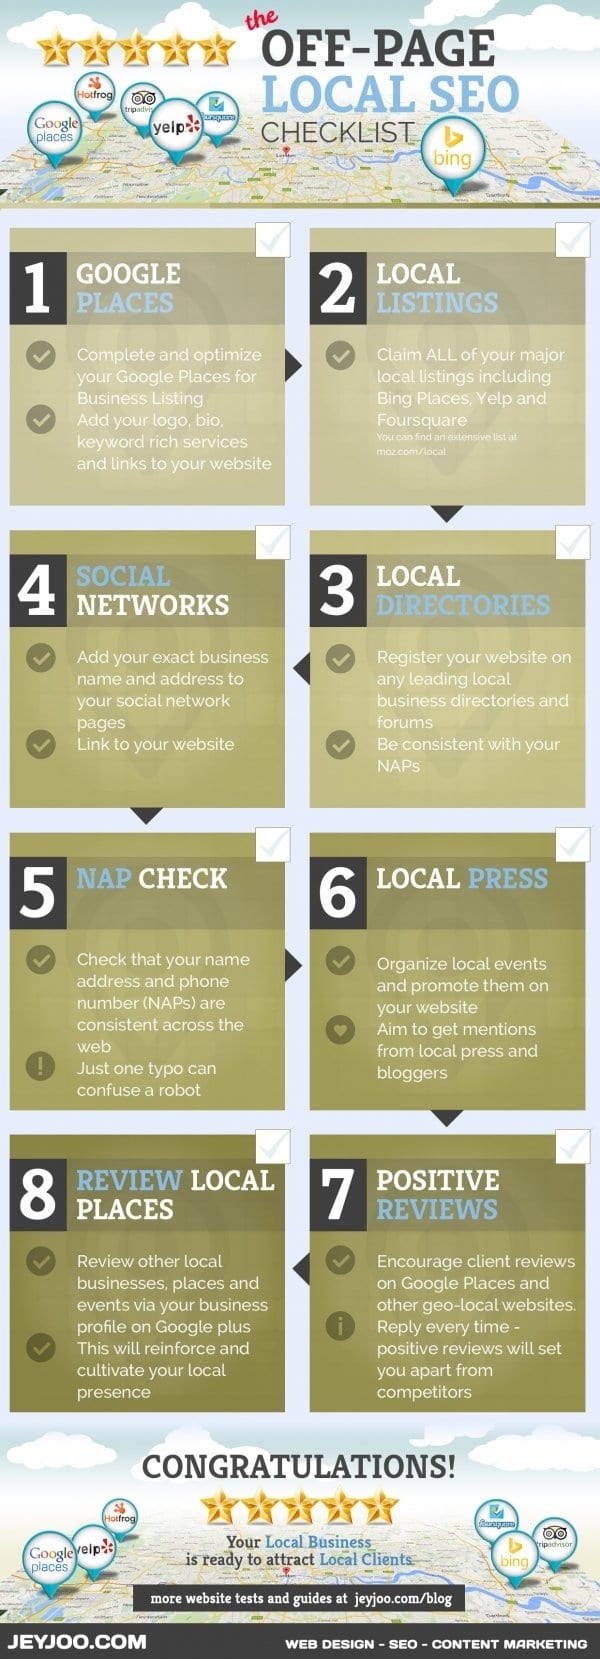 local SEO & Local business